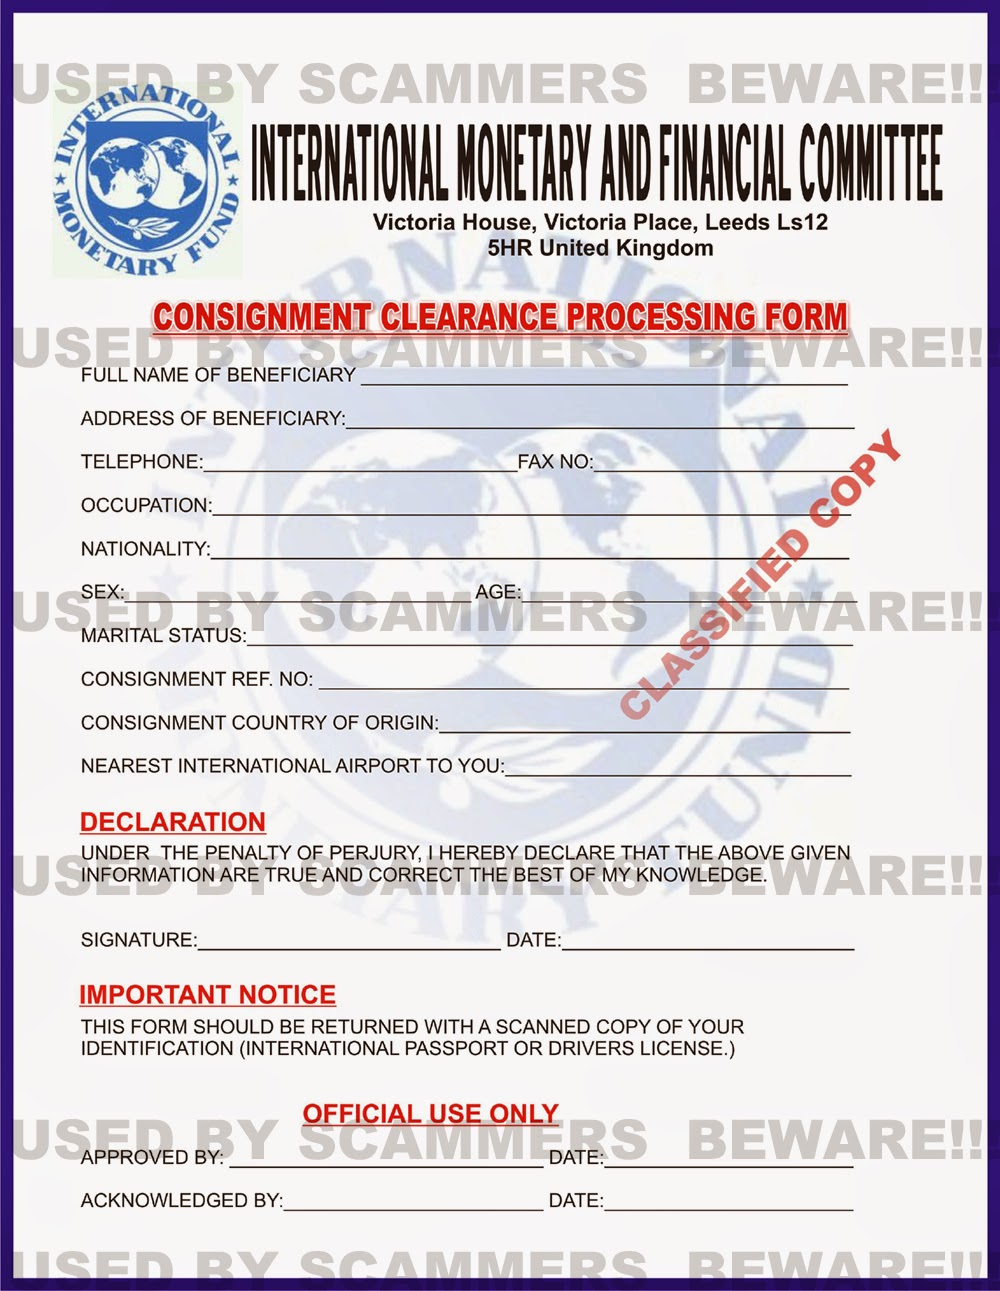 FRAUD FYI: Fake consignment form, fake IMF ID and fake agreement ...